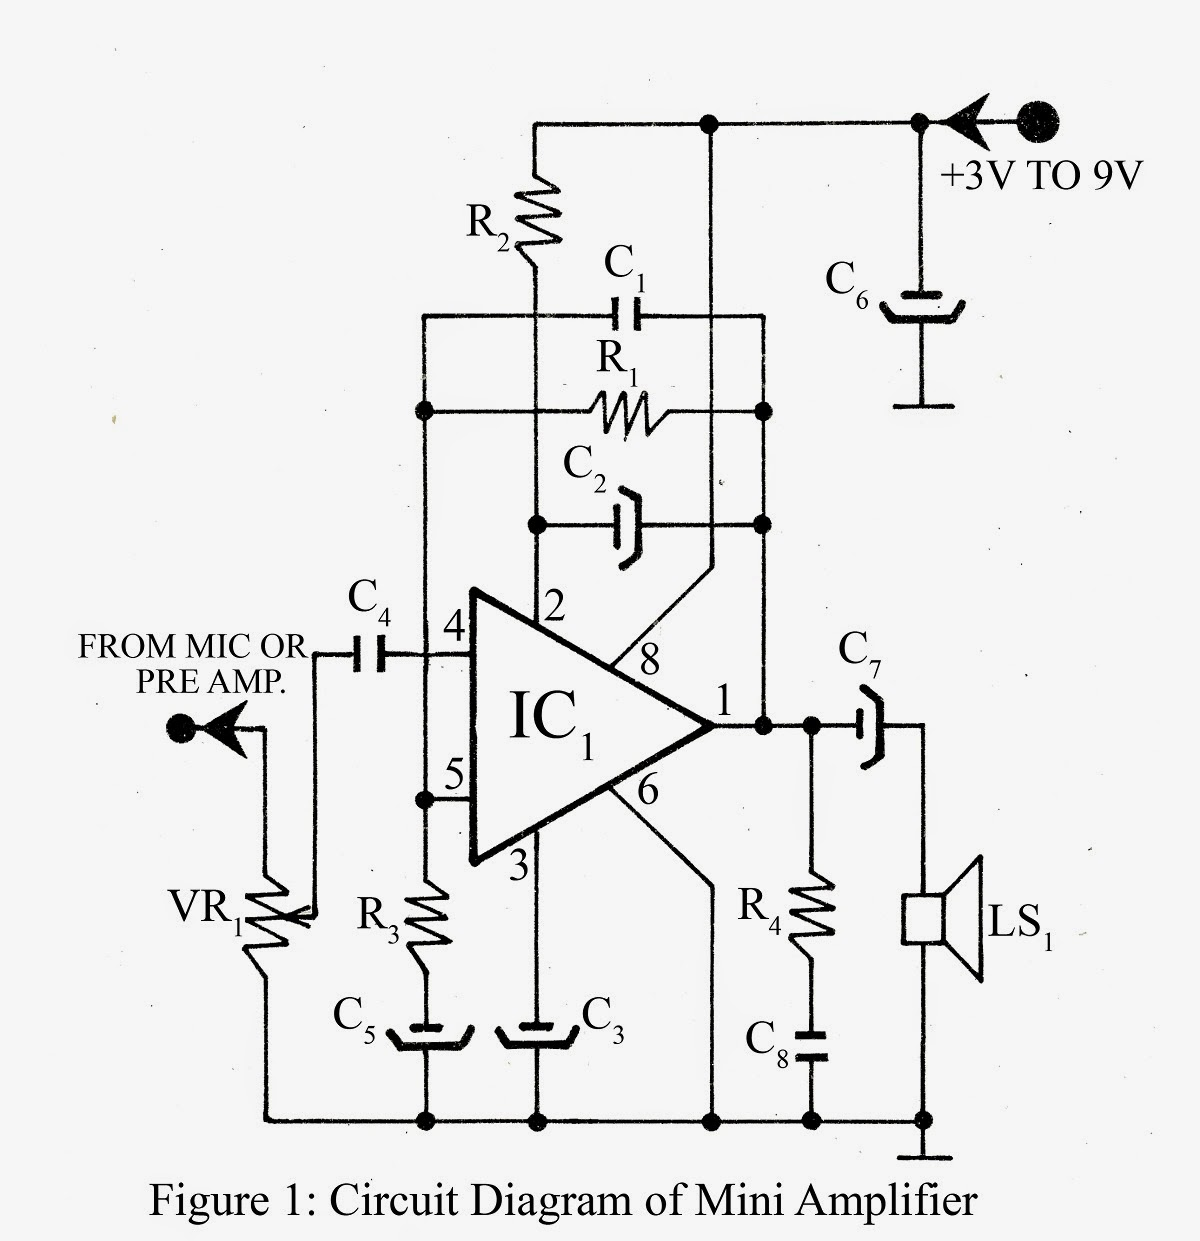 Mini Amplifier Circuit By Tda2822m Ic Circuits99 Fire Alarm Using Thermistor 038 Ne555